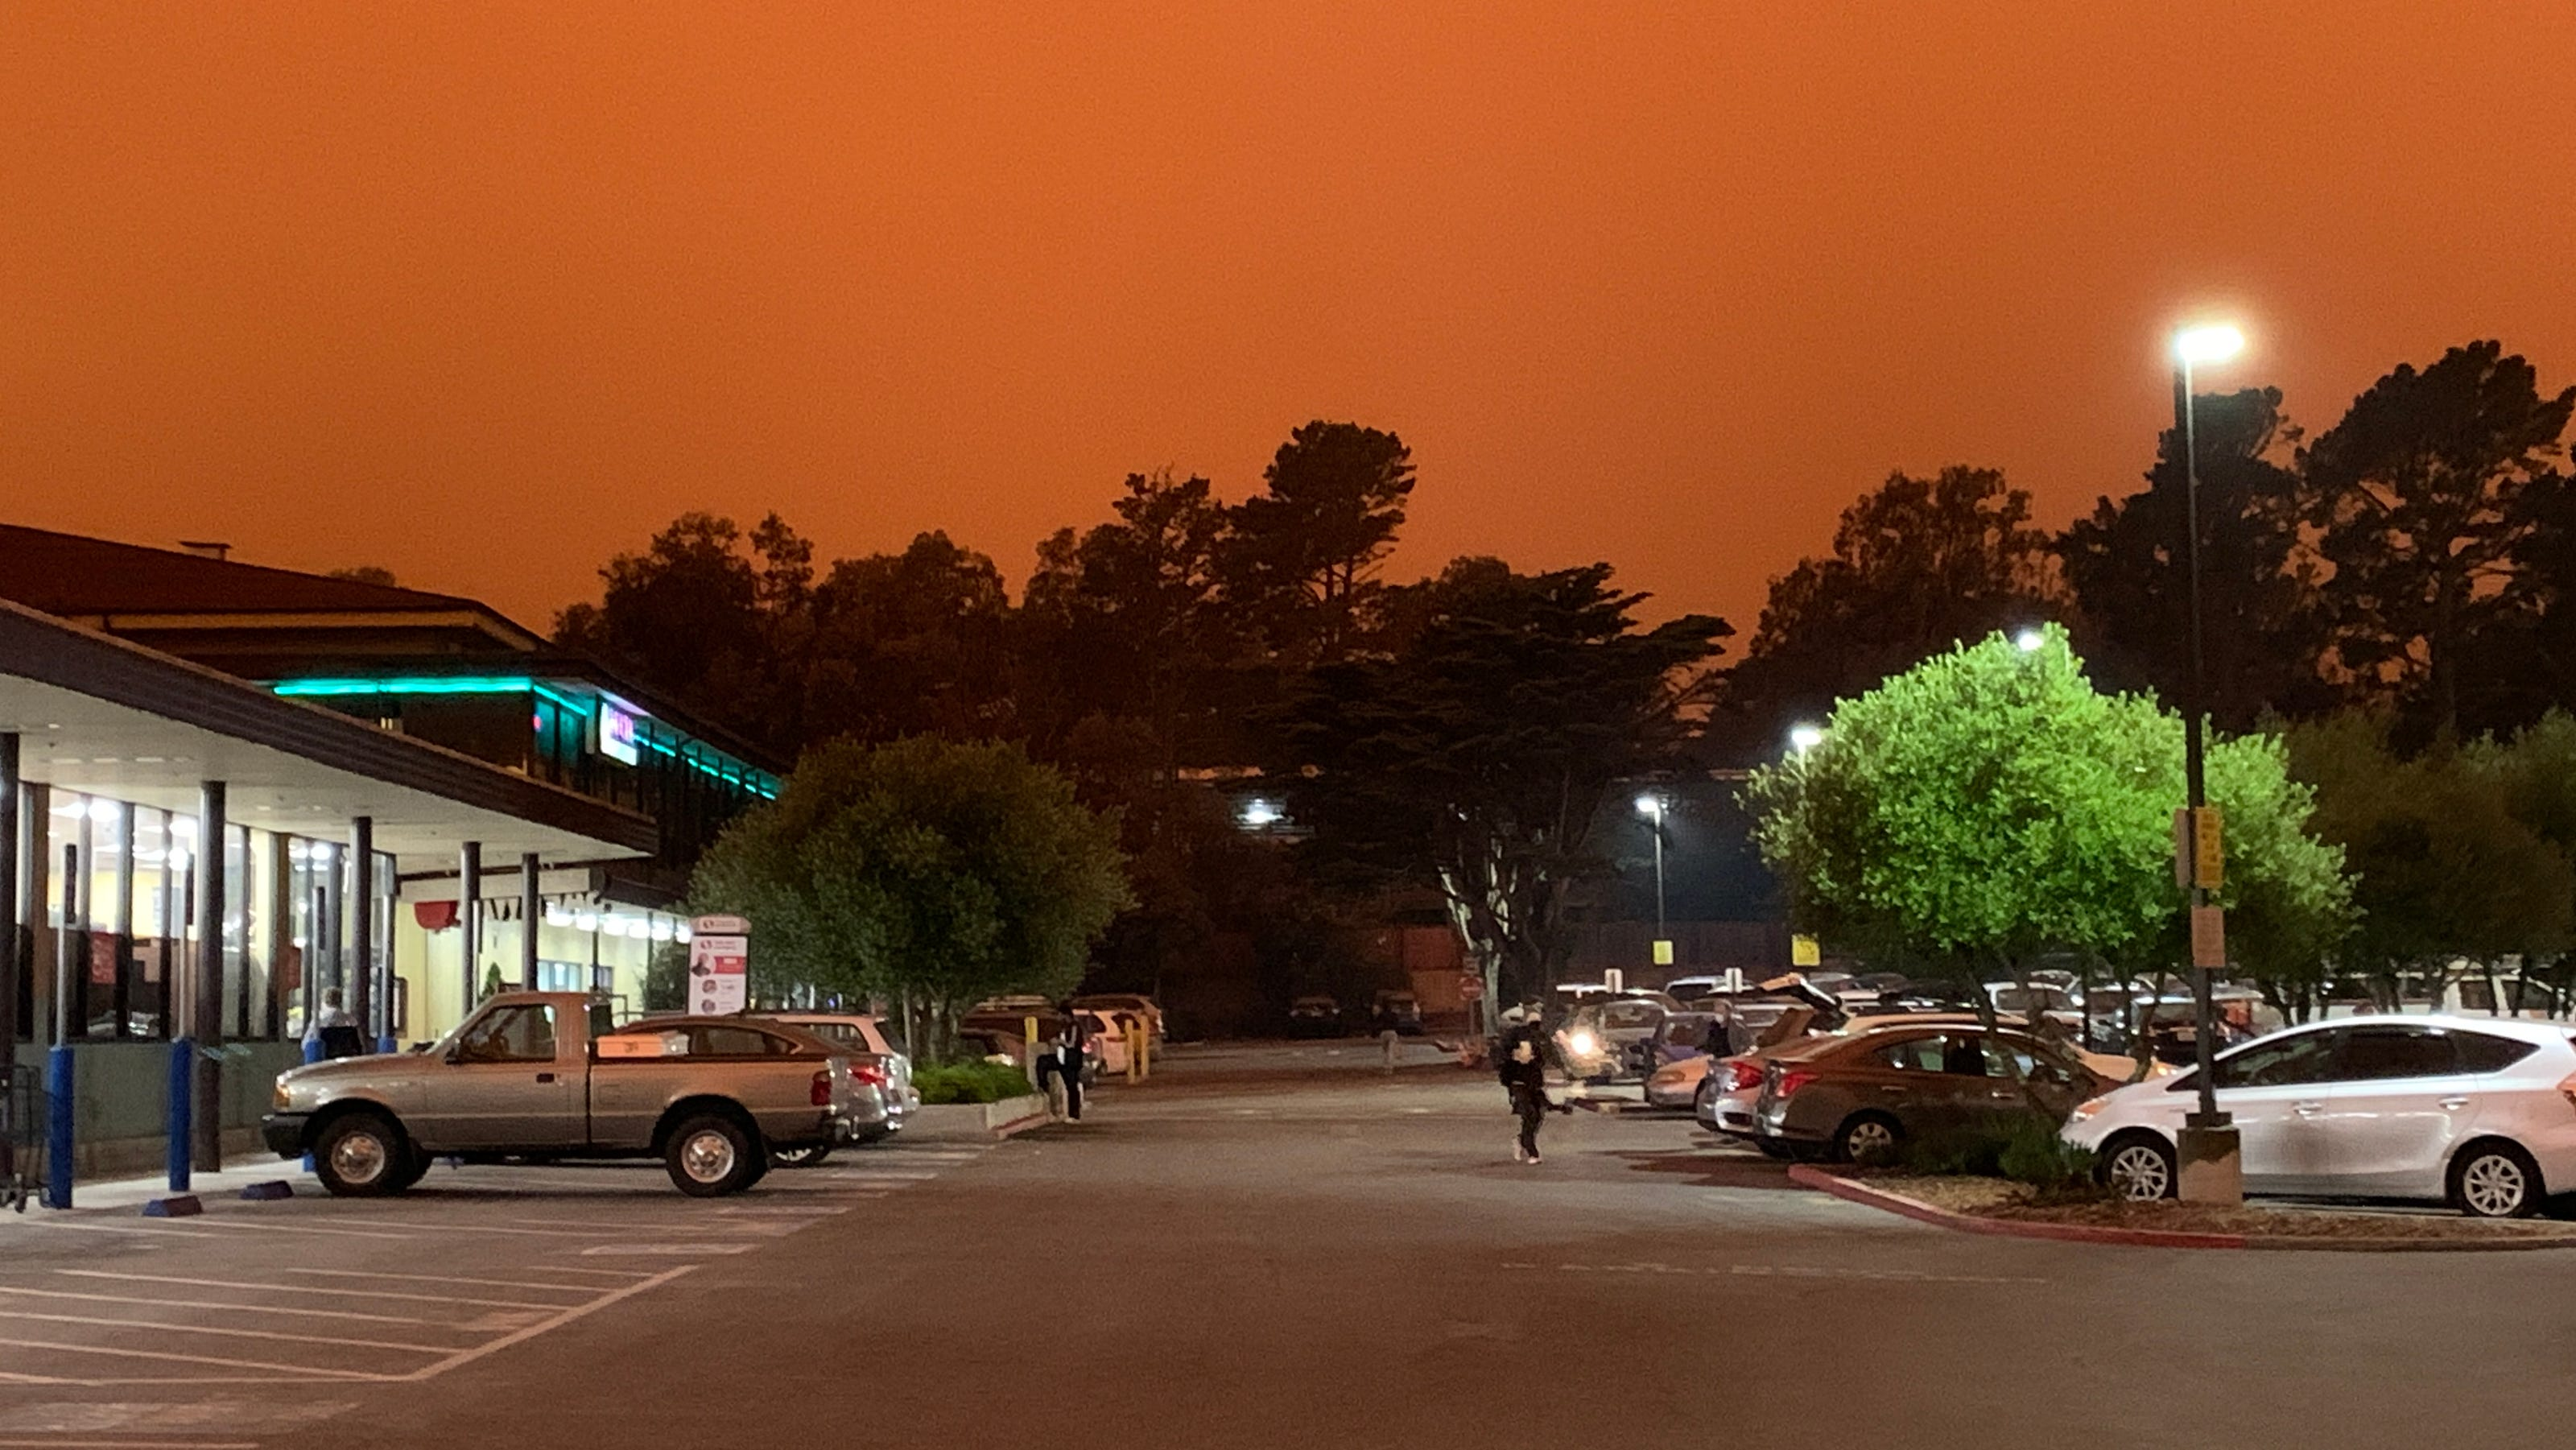 As heat wave brings 'critical risks' of wildfires, California contends with two new blazes thumbnail